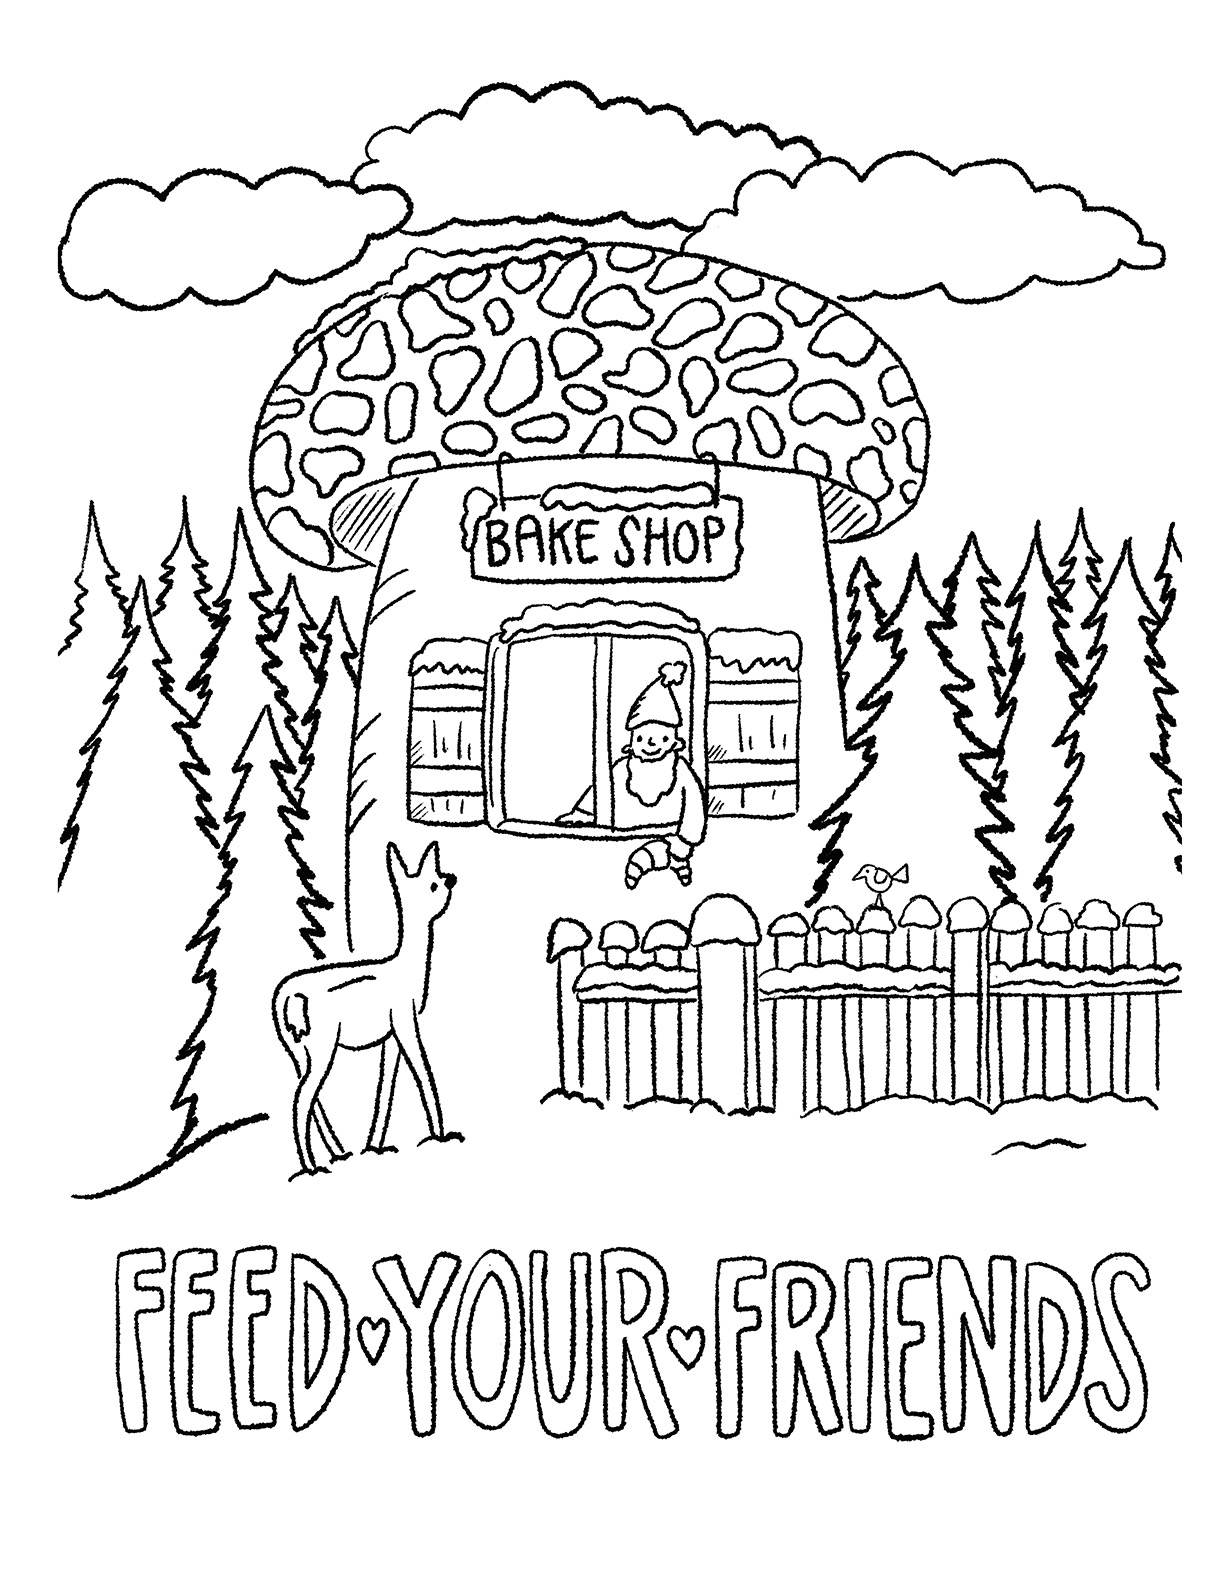 AUGUST FIRST COLORING BOOK: FEED YOUR FRIENDS